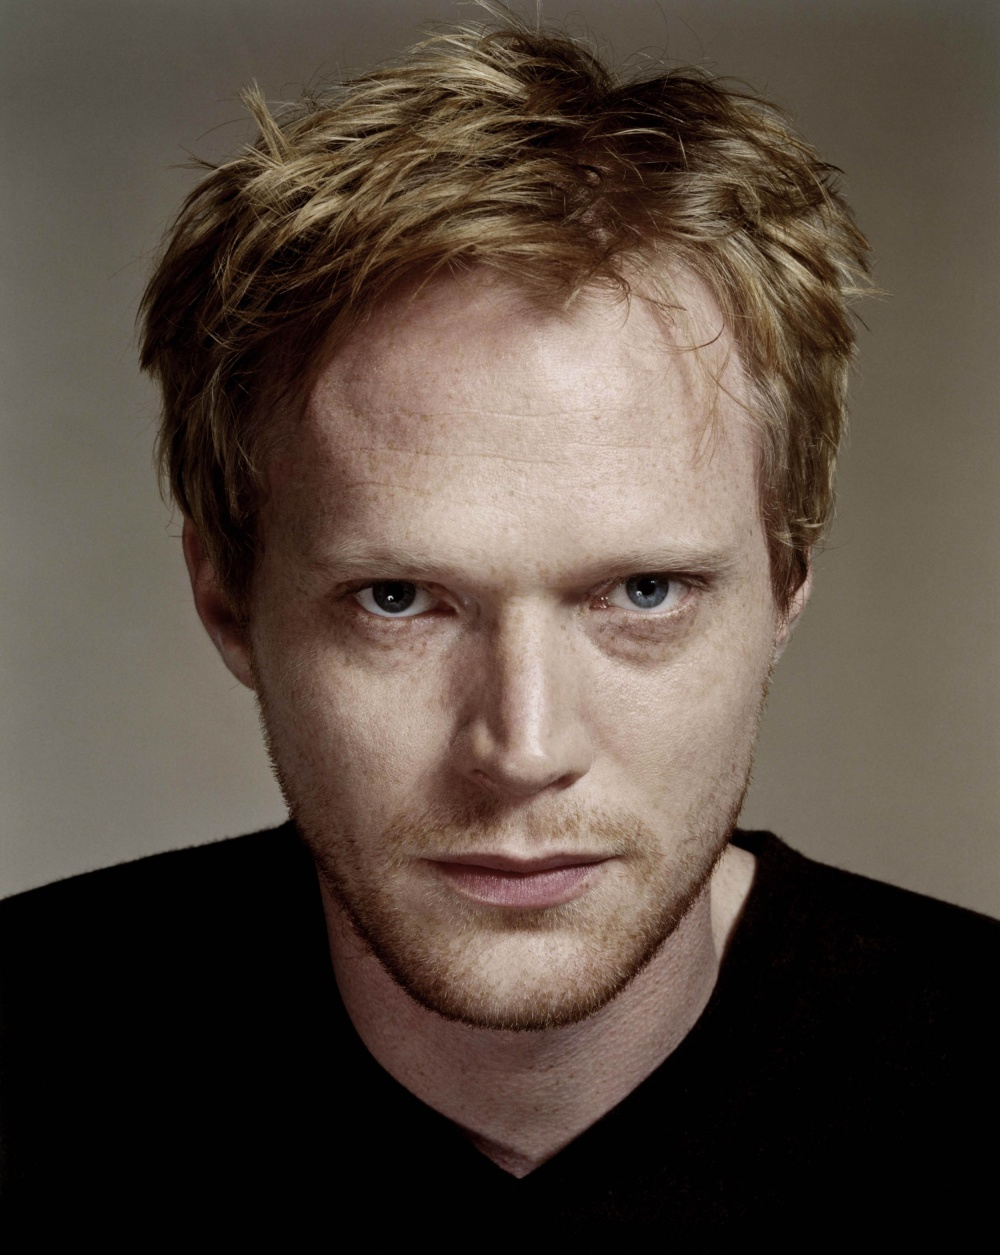 Paul Bettany photo gallery - 59 high quality pics of Paul Bettany ... Robert Pattinson